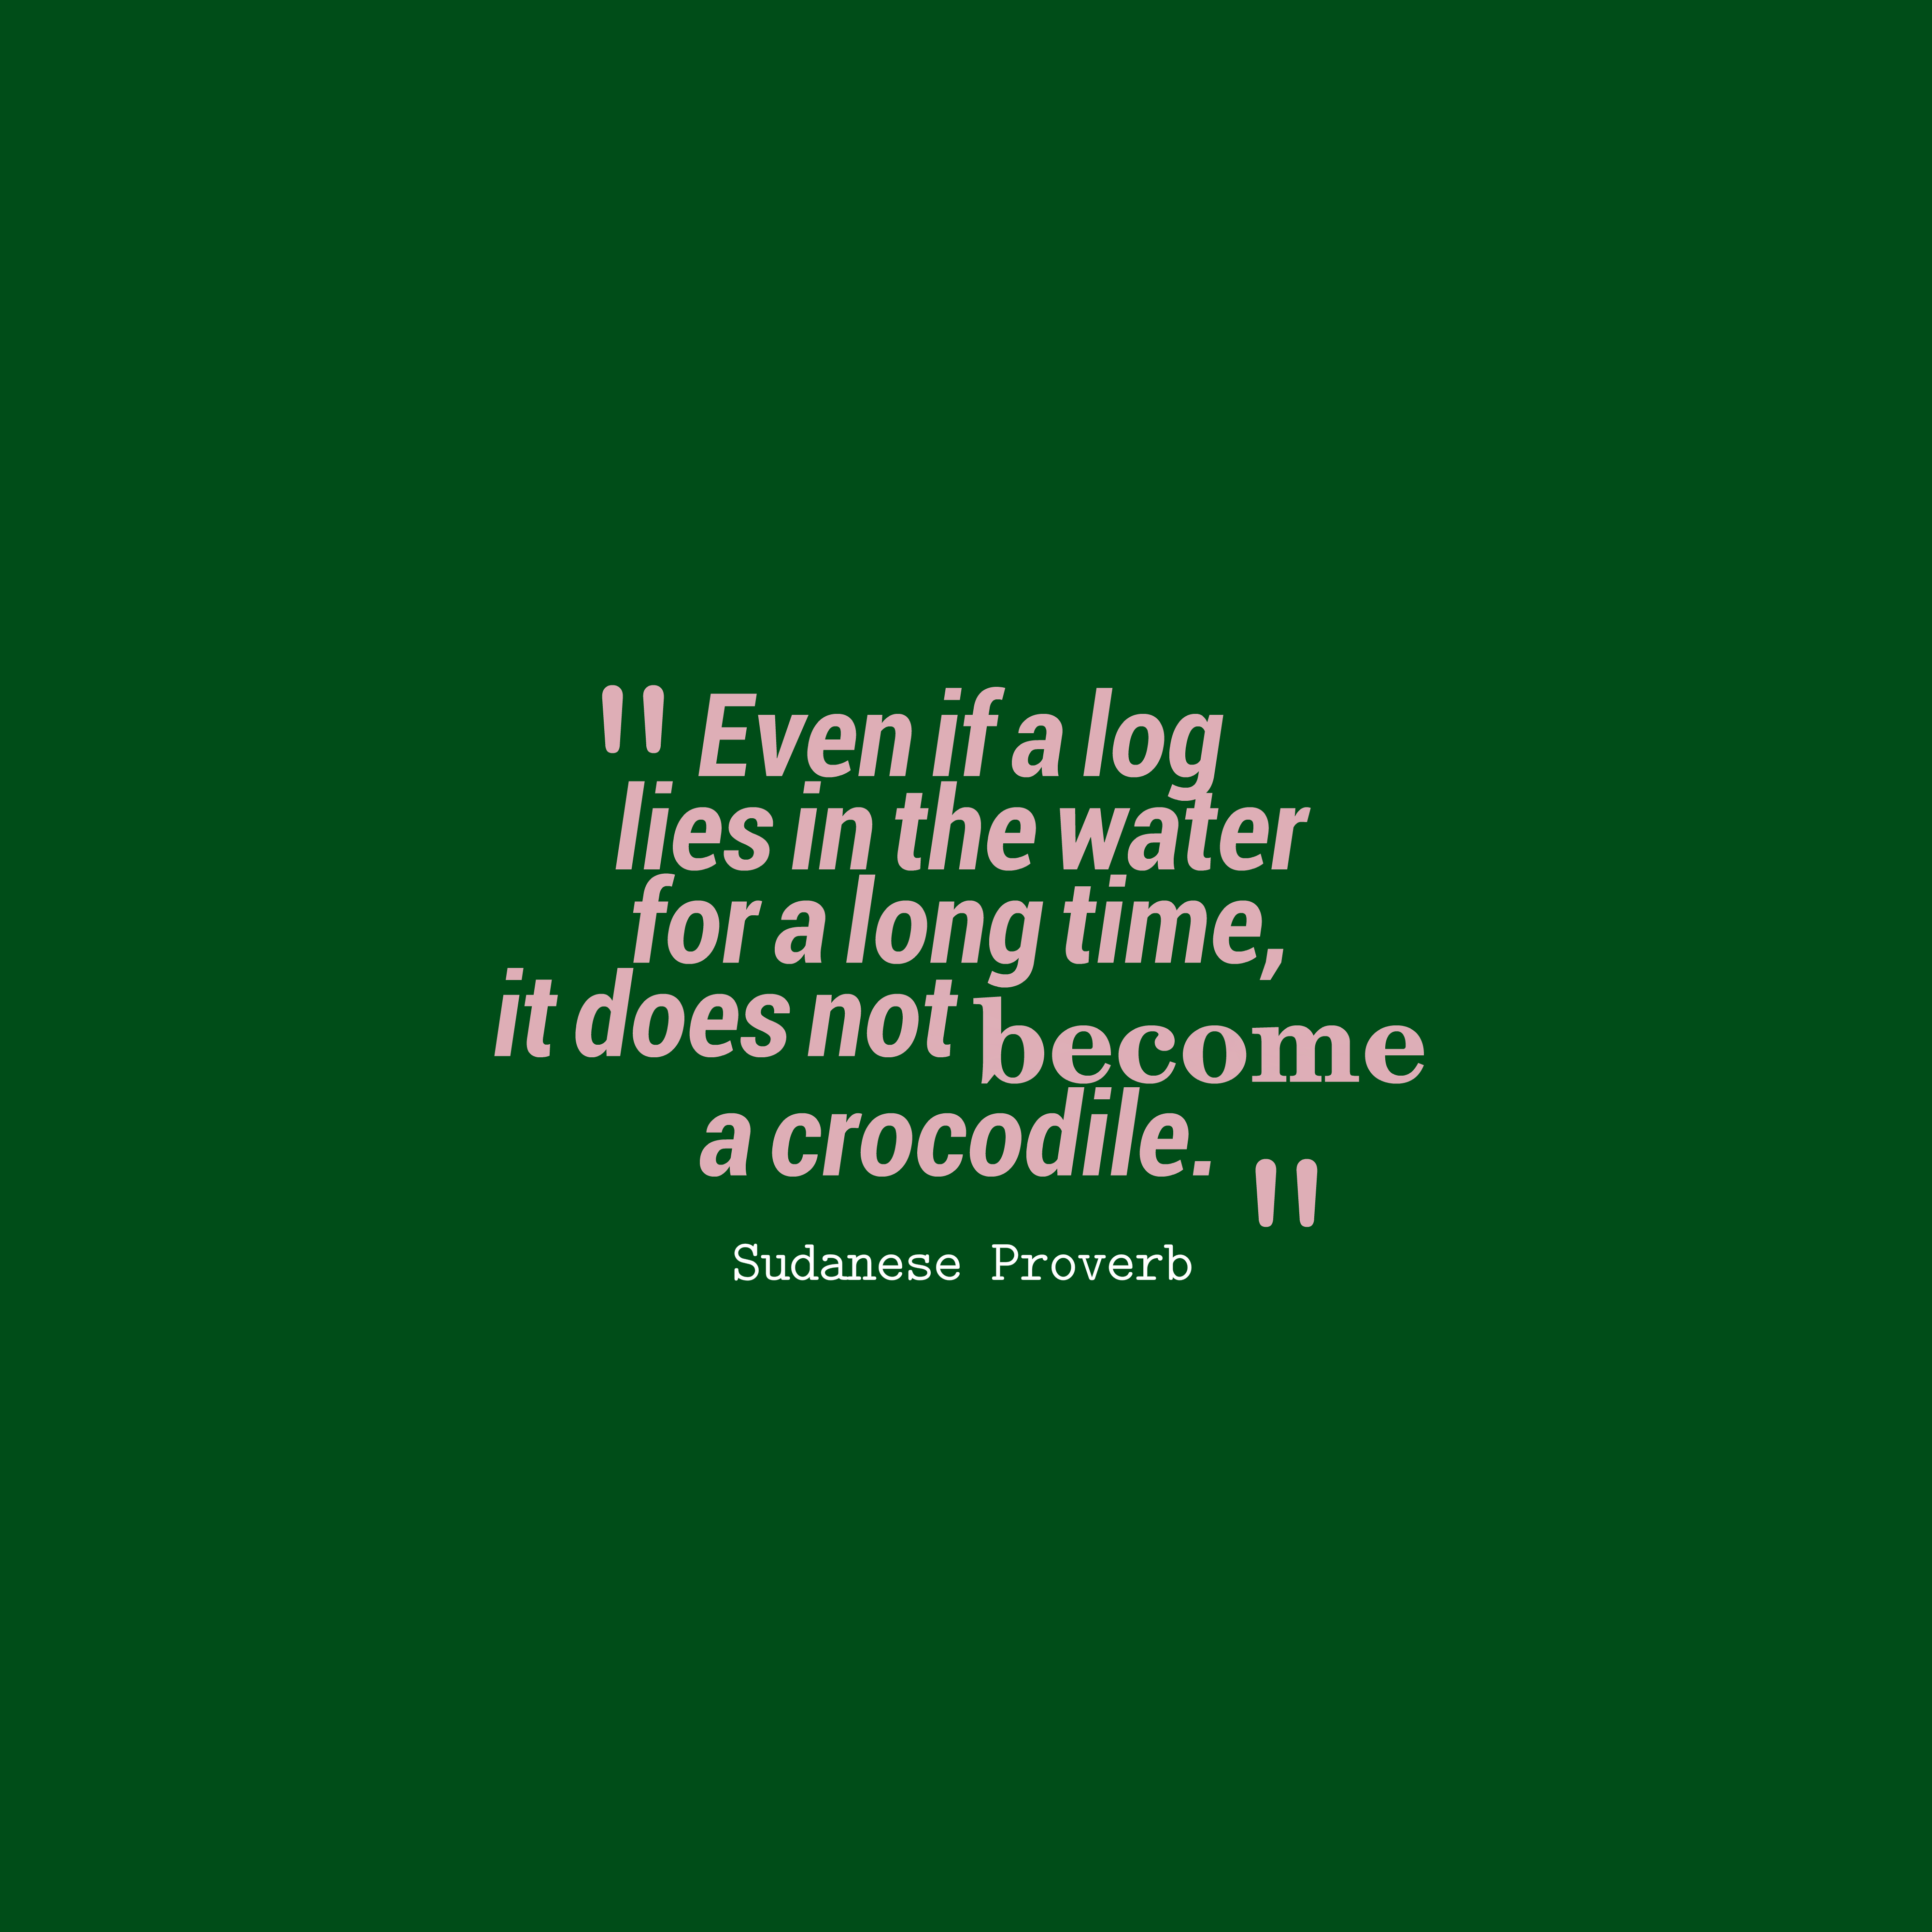 Quotes image of Even if a log lies in the water for a long time, it does not become a crocodile.